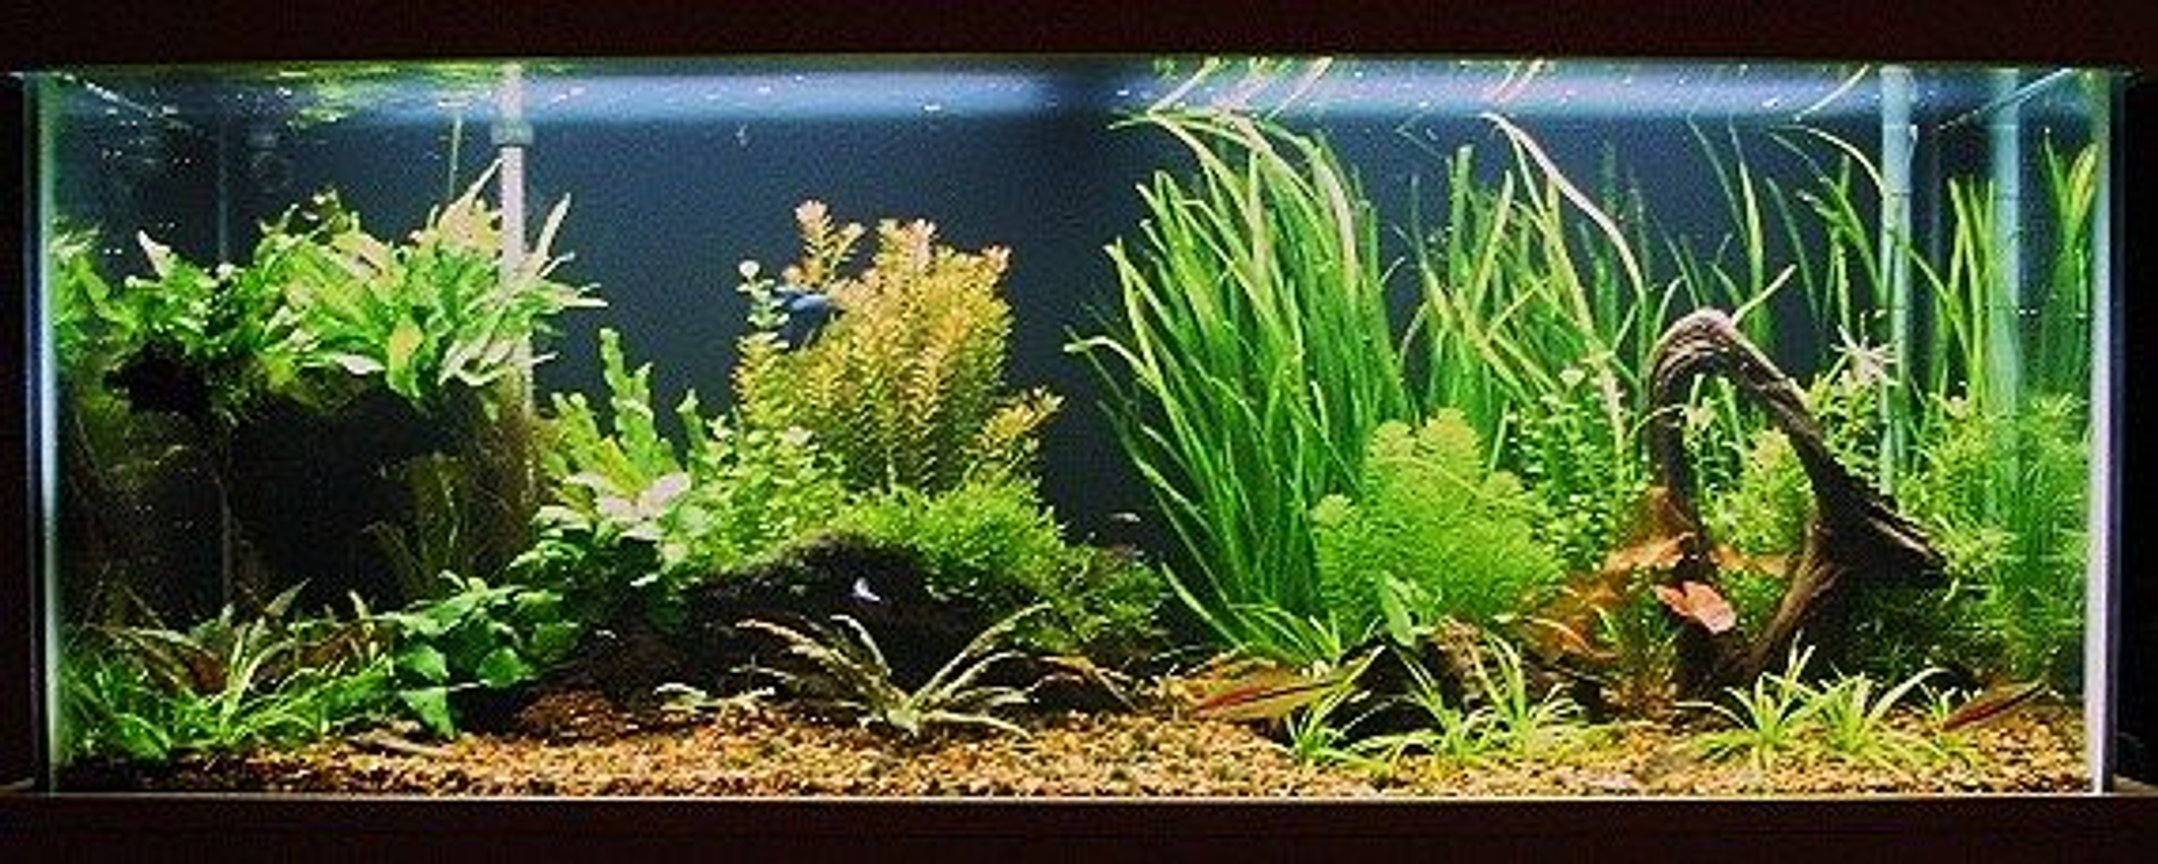 75 gallons planted tank (mostly live plants and fish) - Sharpened the detail on it and made it bigger. Original shows full tank although its dark on here. 75g low tech No cO2 just lights, filter, and heater!!